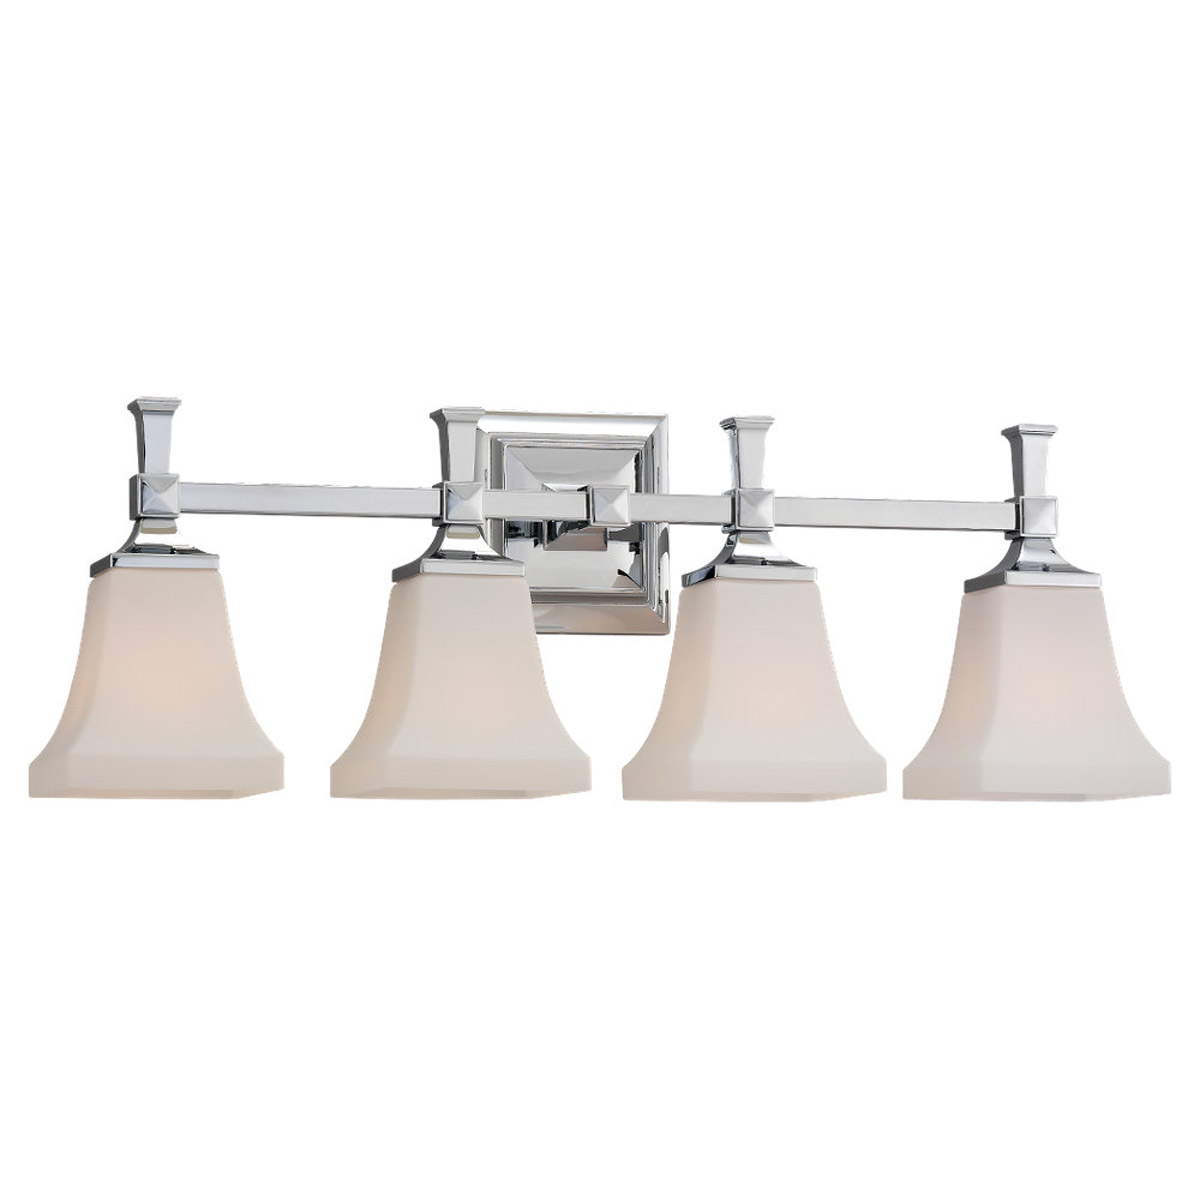 Sea Gull Lighting Melody 4 Light Bath Vanity in Chrome 44708-05